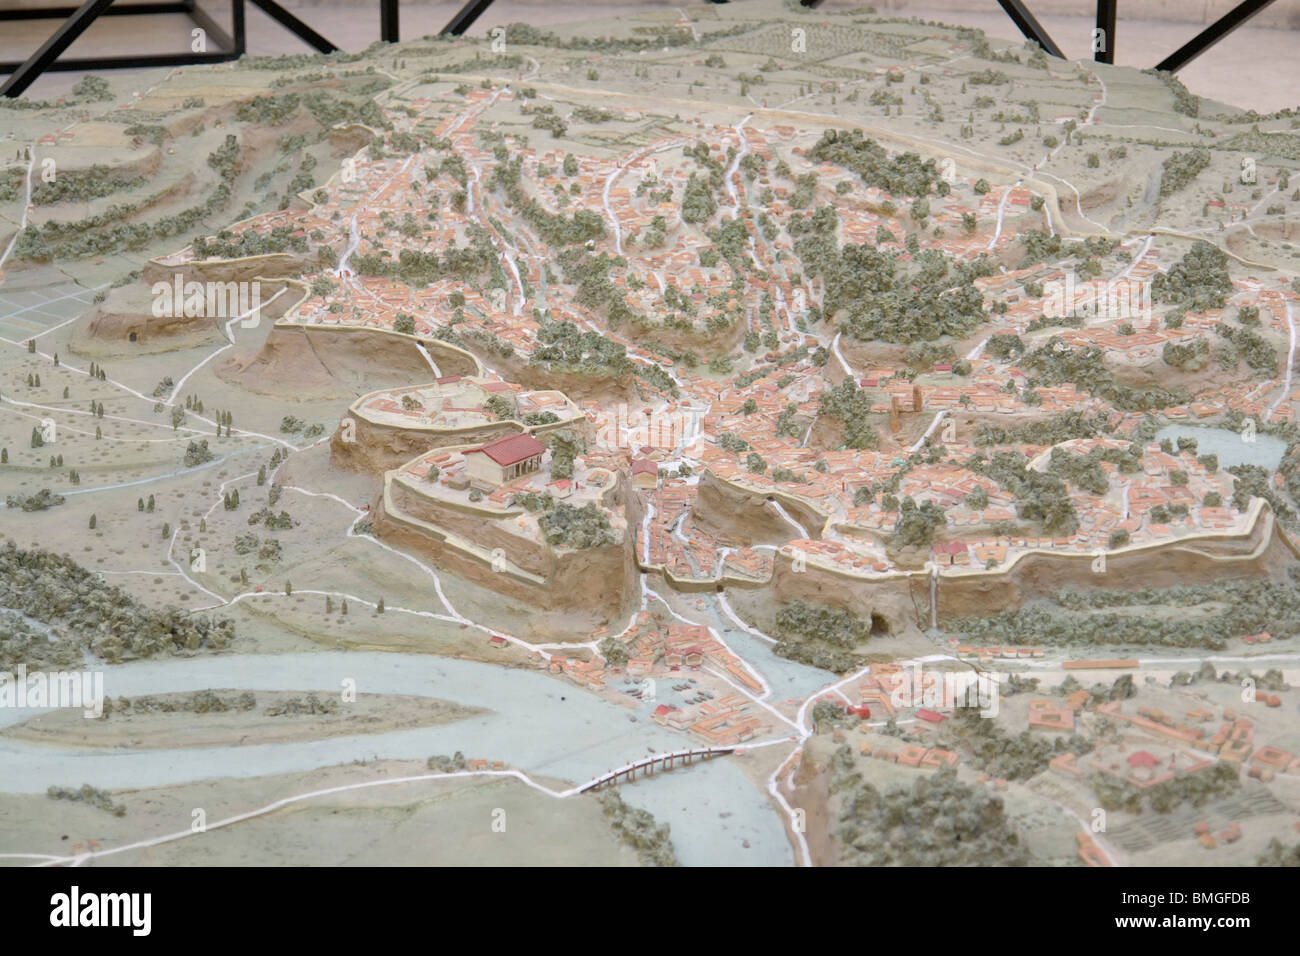 Scale model of archaic Rome [...] - Stock Image